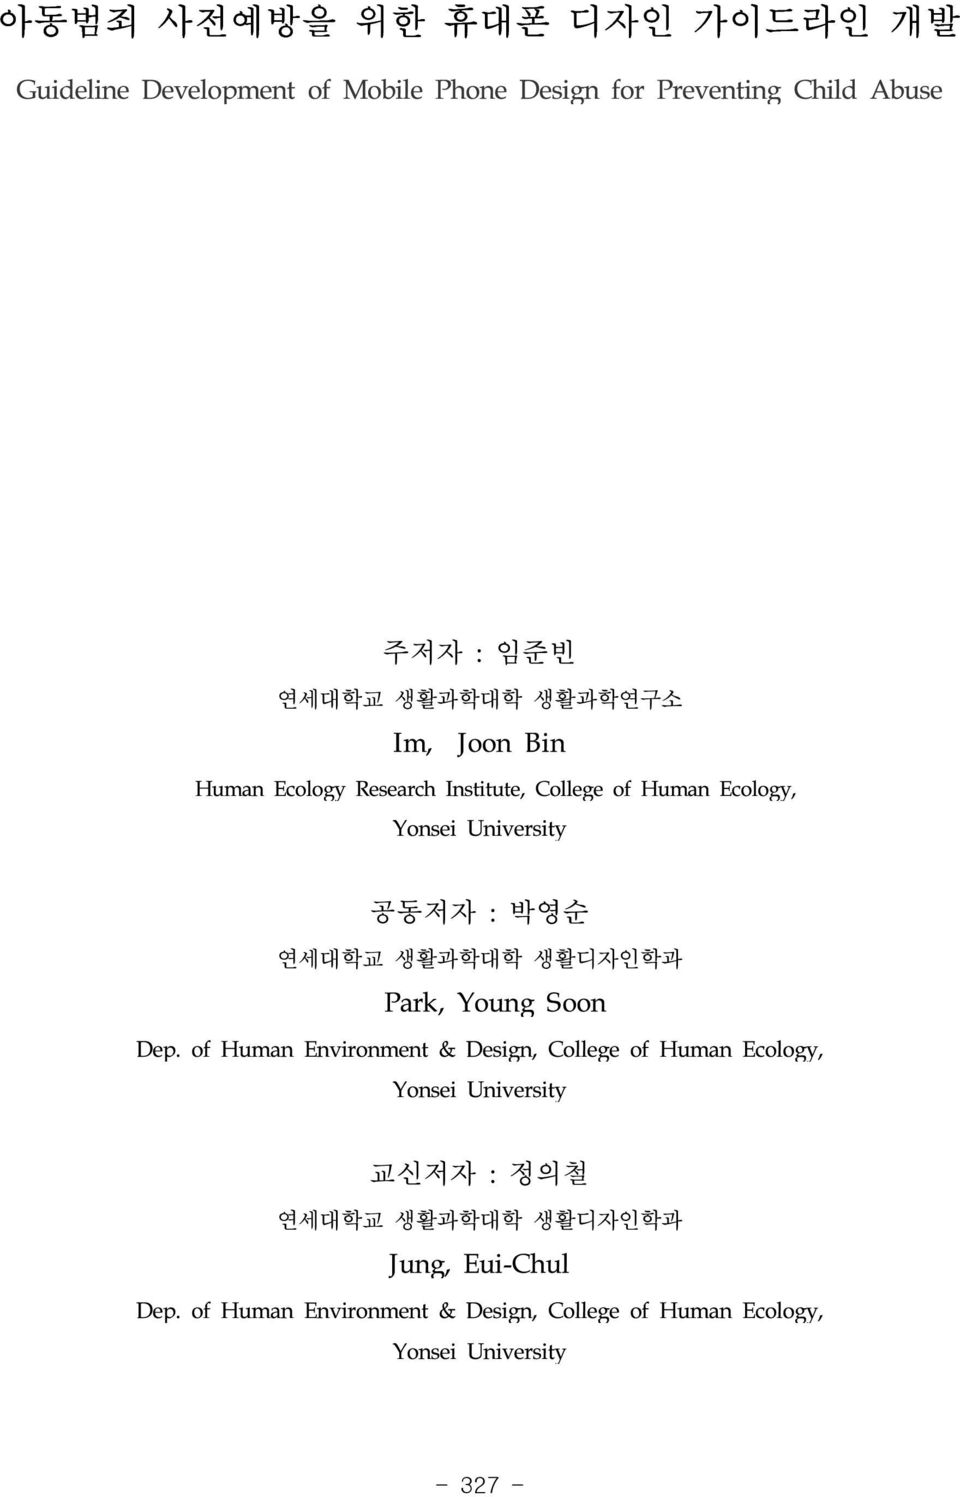 박영순 연세대학교 생활과학대학 생활디자인학과 Park Young Soon Dep of Human Environment & Design College of Human Ecology Yonsei University